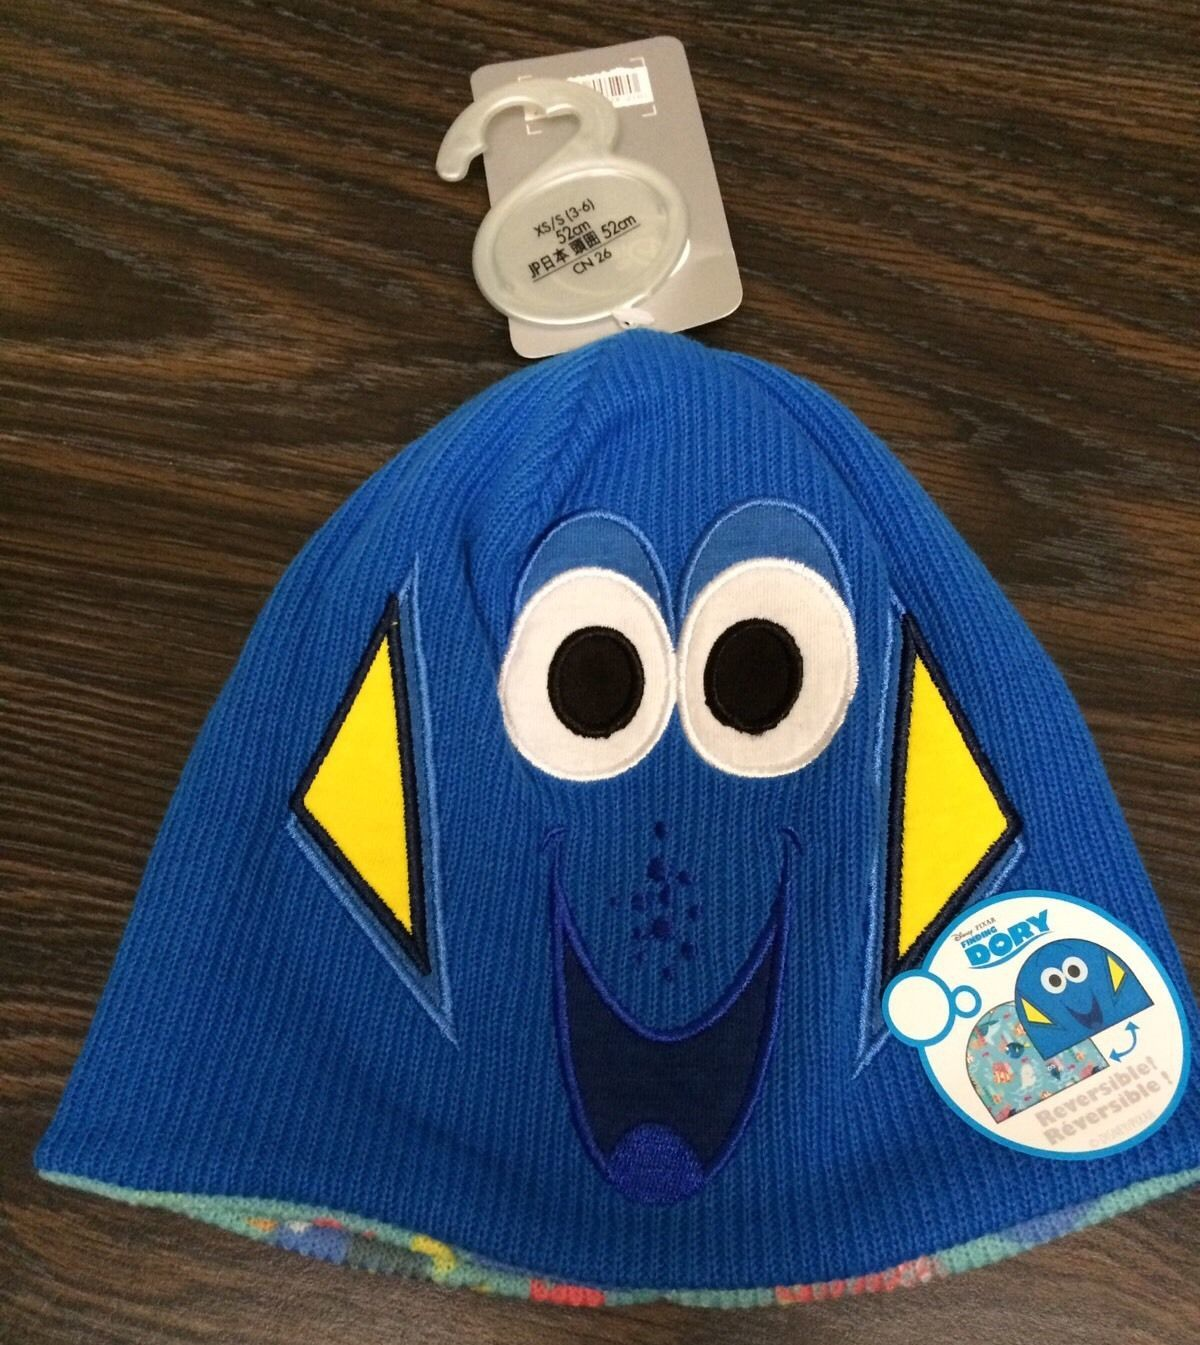 Primary image for Disney Store Finding Dory Reversible Kids Hat PIXAR Unisex sz XS S 3 - 6